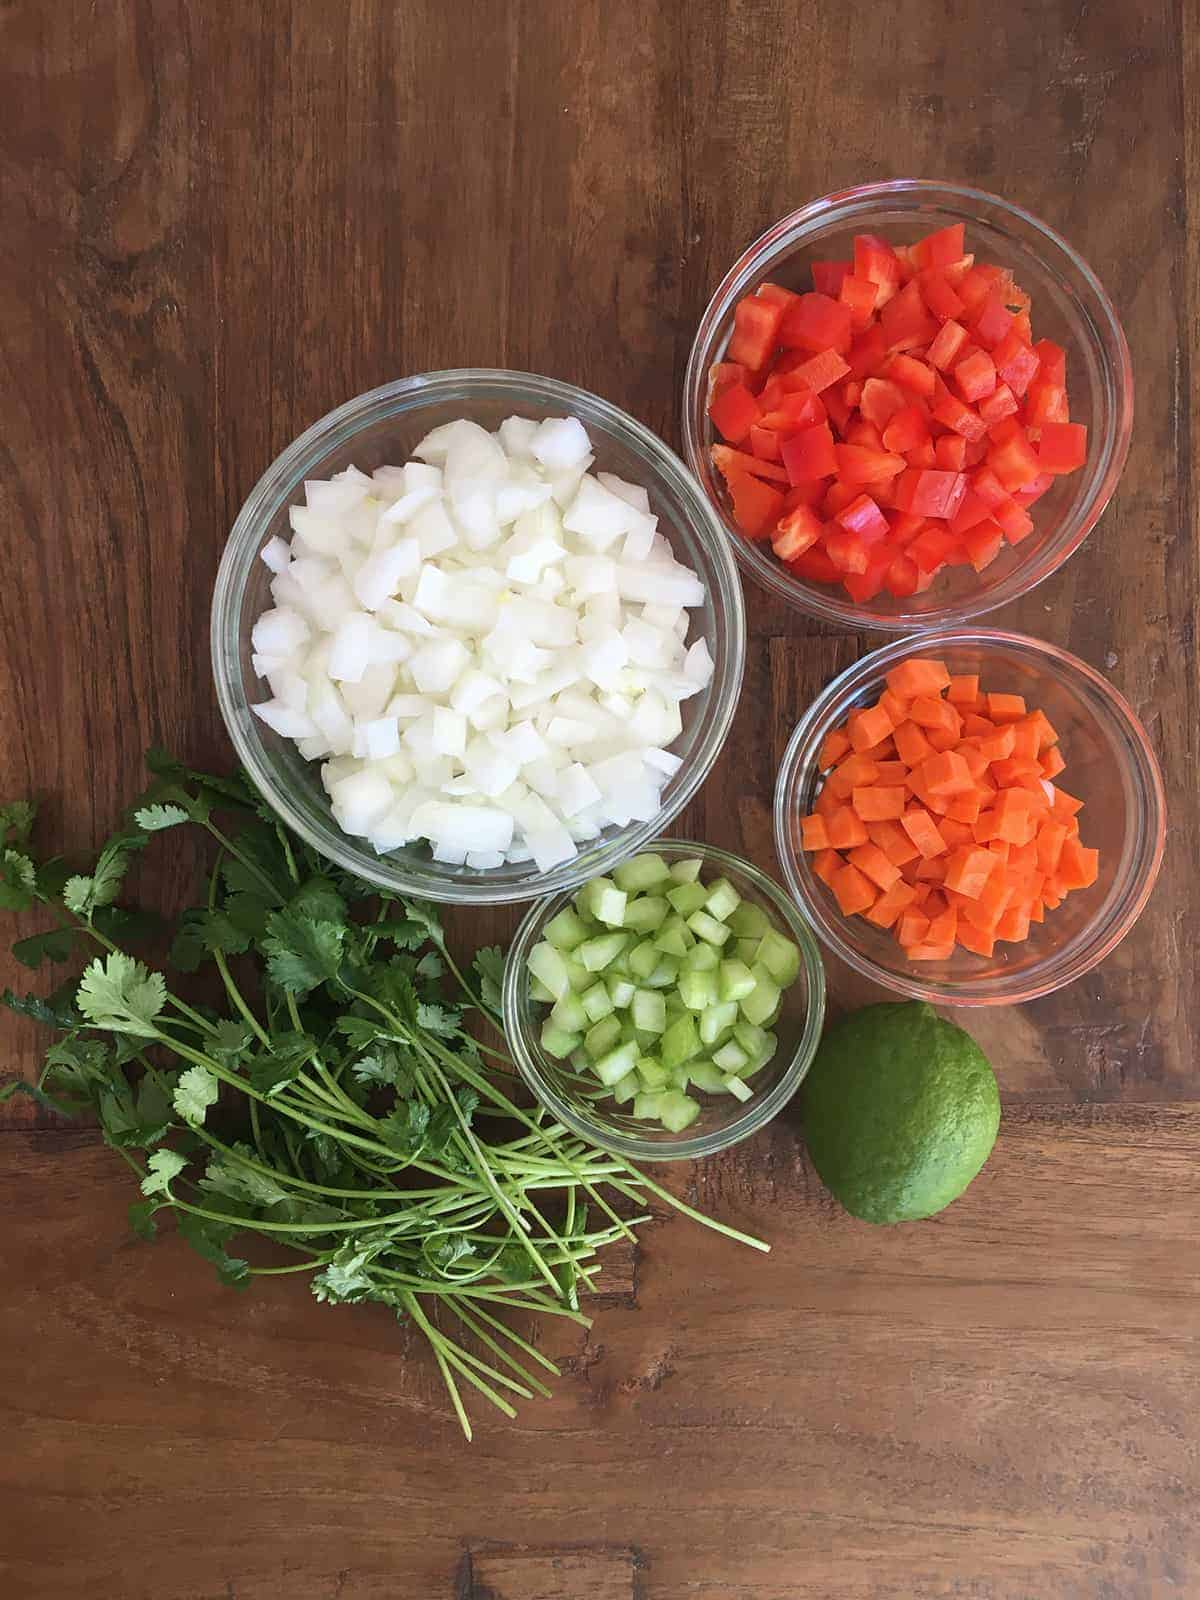 Fresh cilantro and lime alongside glass food prep bowls containing chopped onions, red pepper, carrots and celery